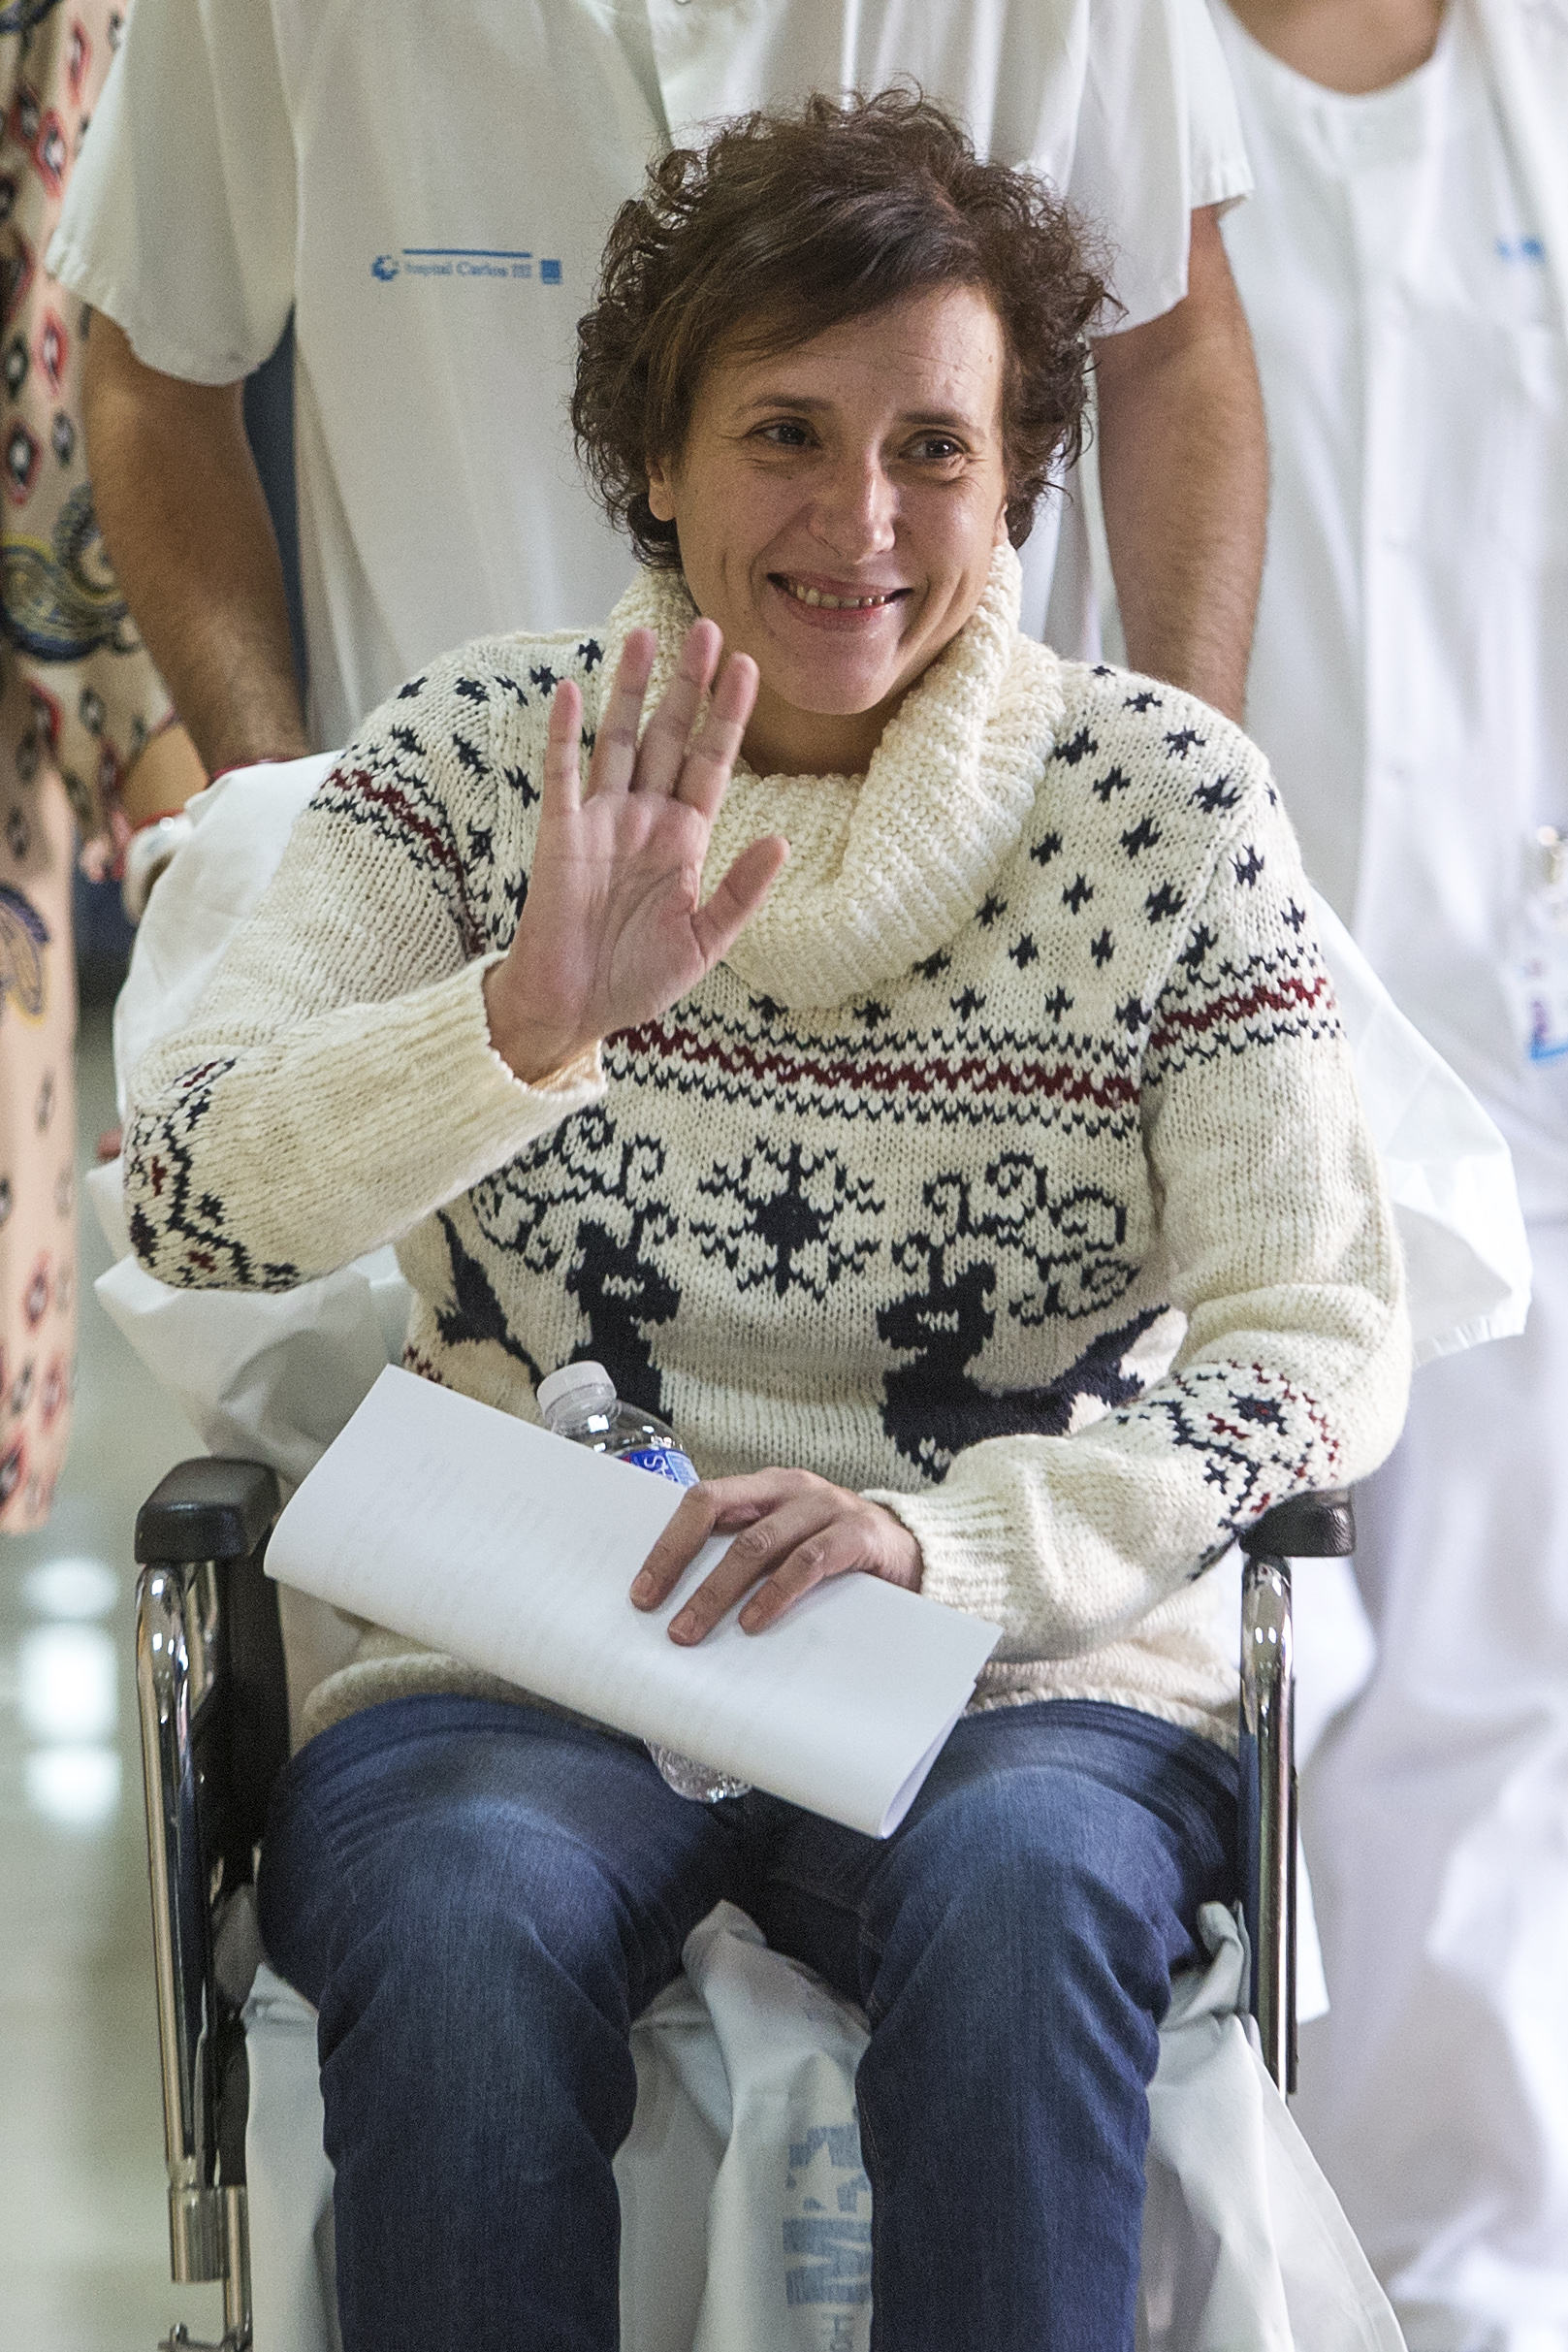 Teresa Romero, bottom right, arrives with medical workers to give a press statement before she leaves the Carlos III hospital in Madrid, Spain, Wednesday, Nov. 5, 2014.